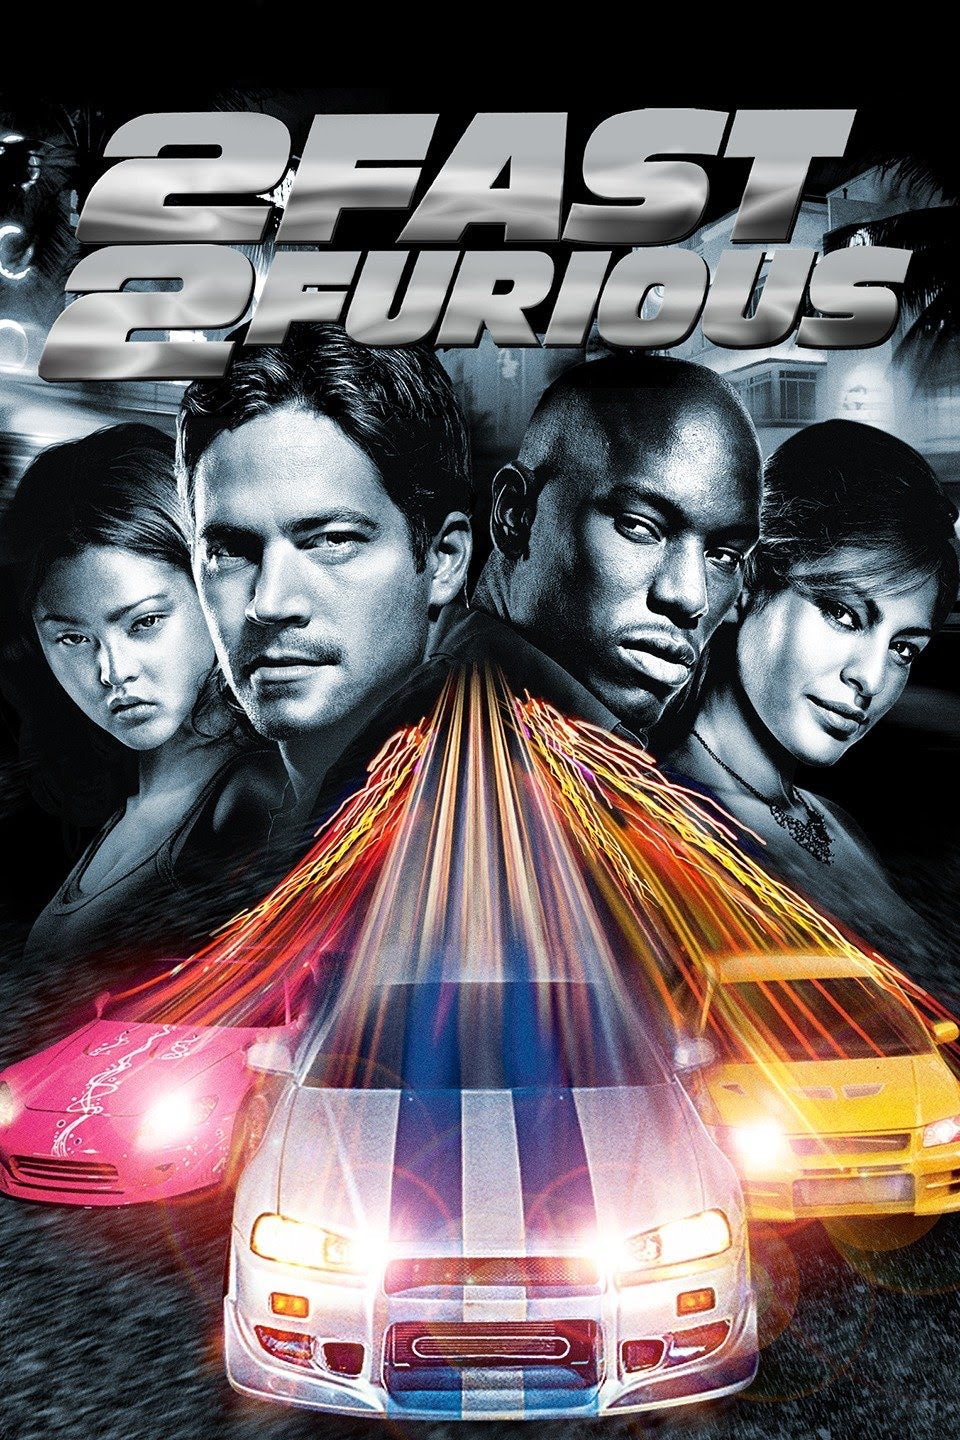 2 Fast 2 Furious (2003) Vudu or Movies Anywhere HD redemption only